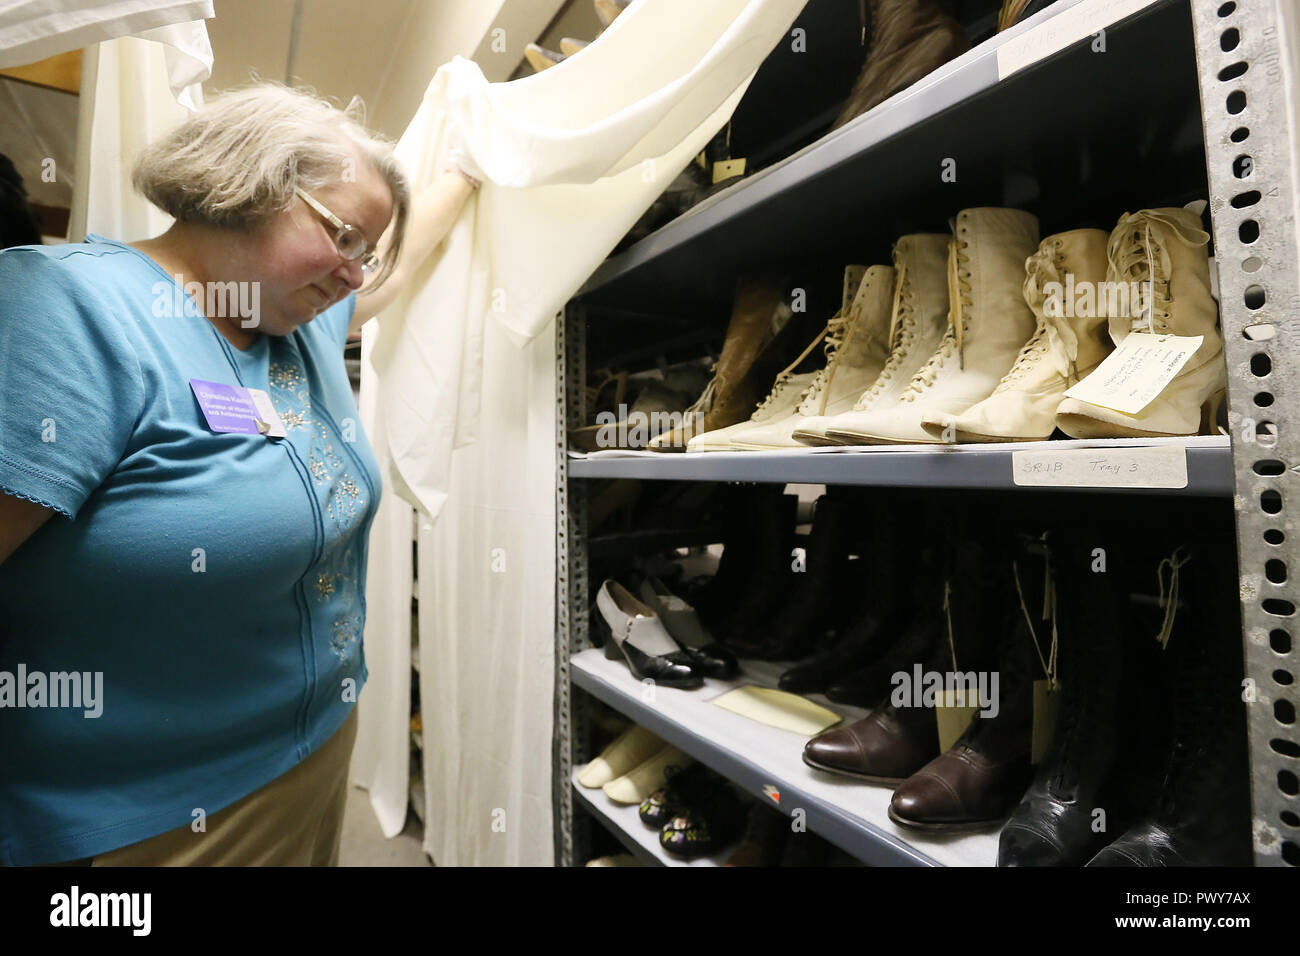 Davenport, Iowa, USA. 10th Sep, 2018. Christina Kastell, curator of history anthropology at the Putnam Museum looks over the collection of shoes from various era's that are part of the museum's costume collection. Pointed toed shoes were common for women. Credit: Kevin E. Schmidt/Quad-City Times/Quad-City Times/ZUMA Wire/Alamy Live News - Stock Image